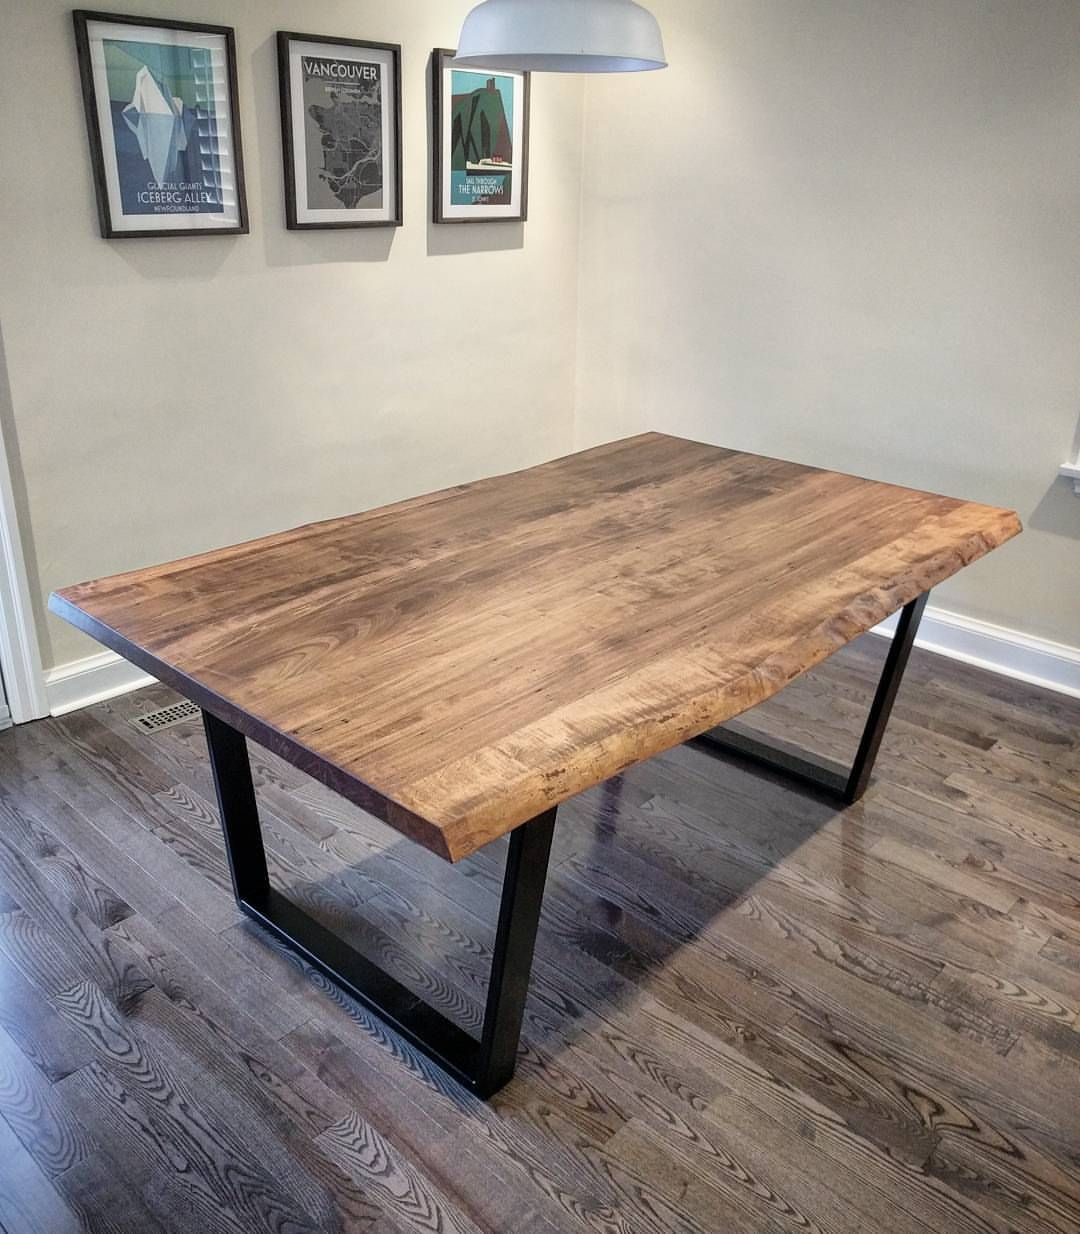 Live Edge Coffee Table Toronto: Live Edge Dining Table Inspiration For Your Dining Room